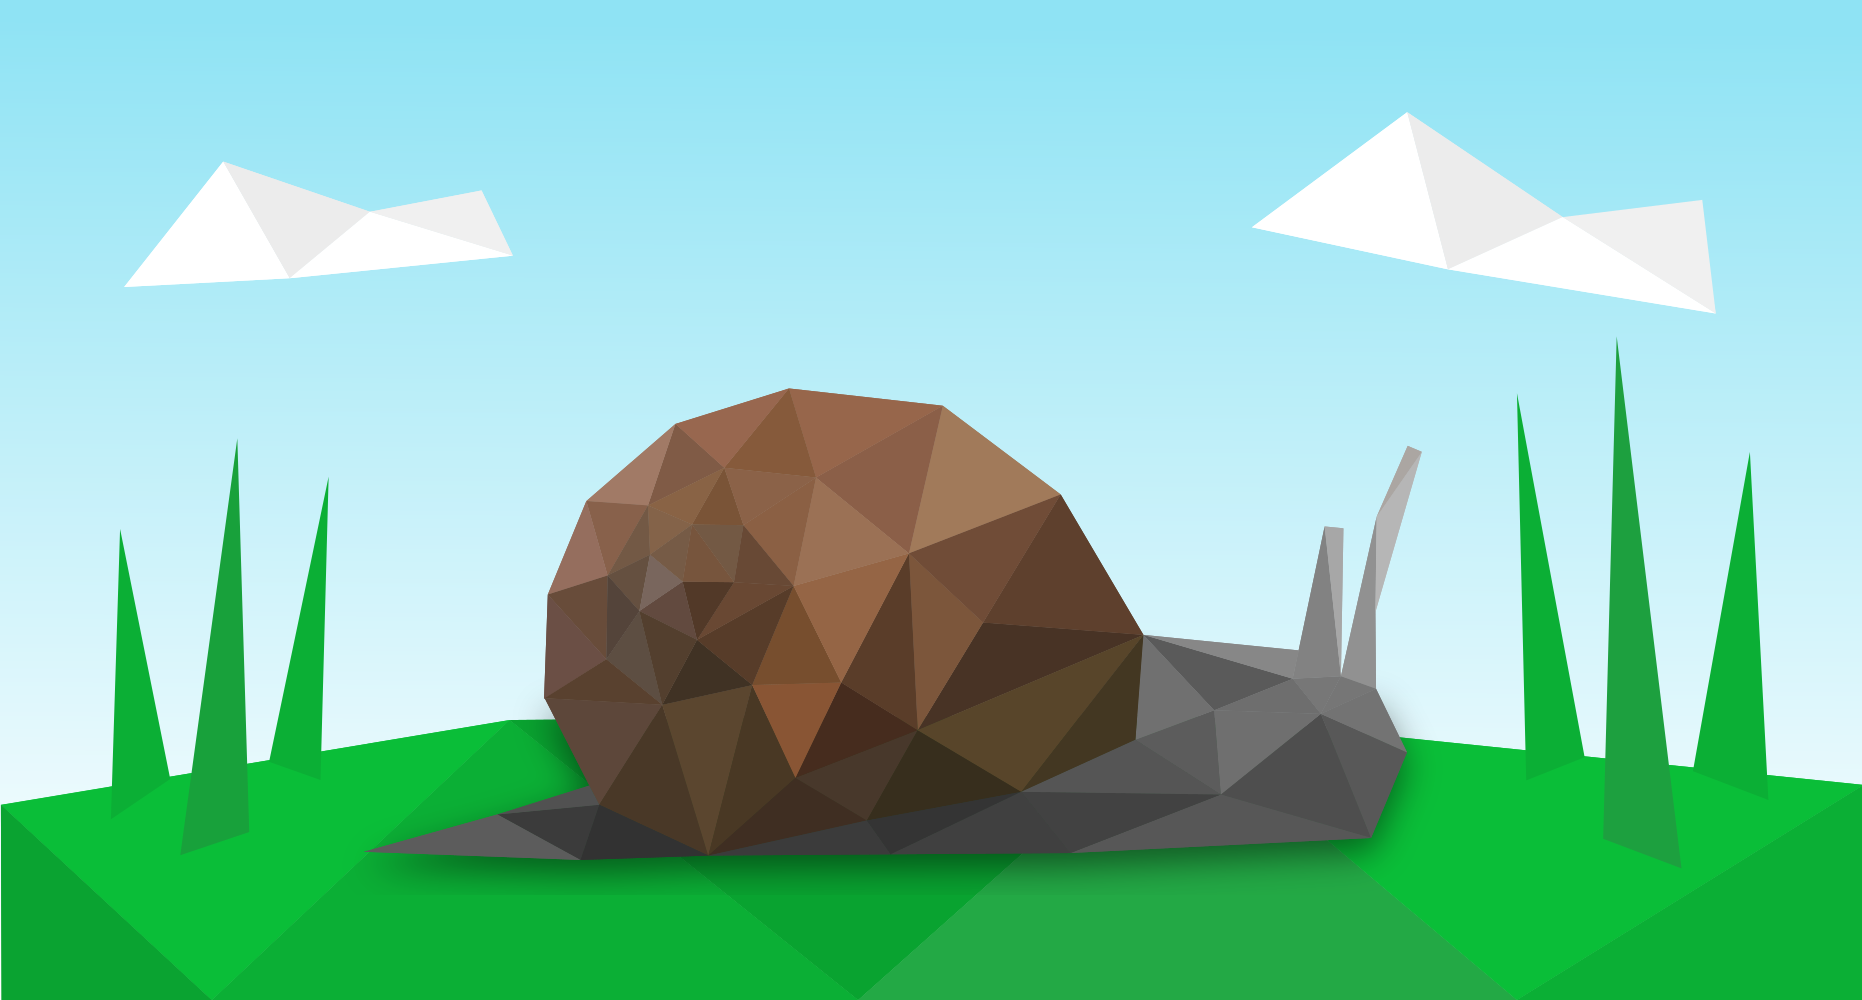 A low poly snail in low poly grass